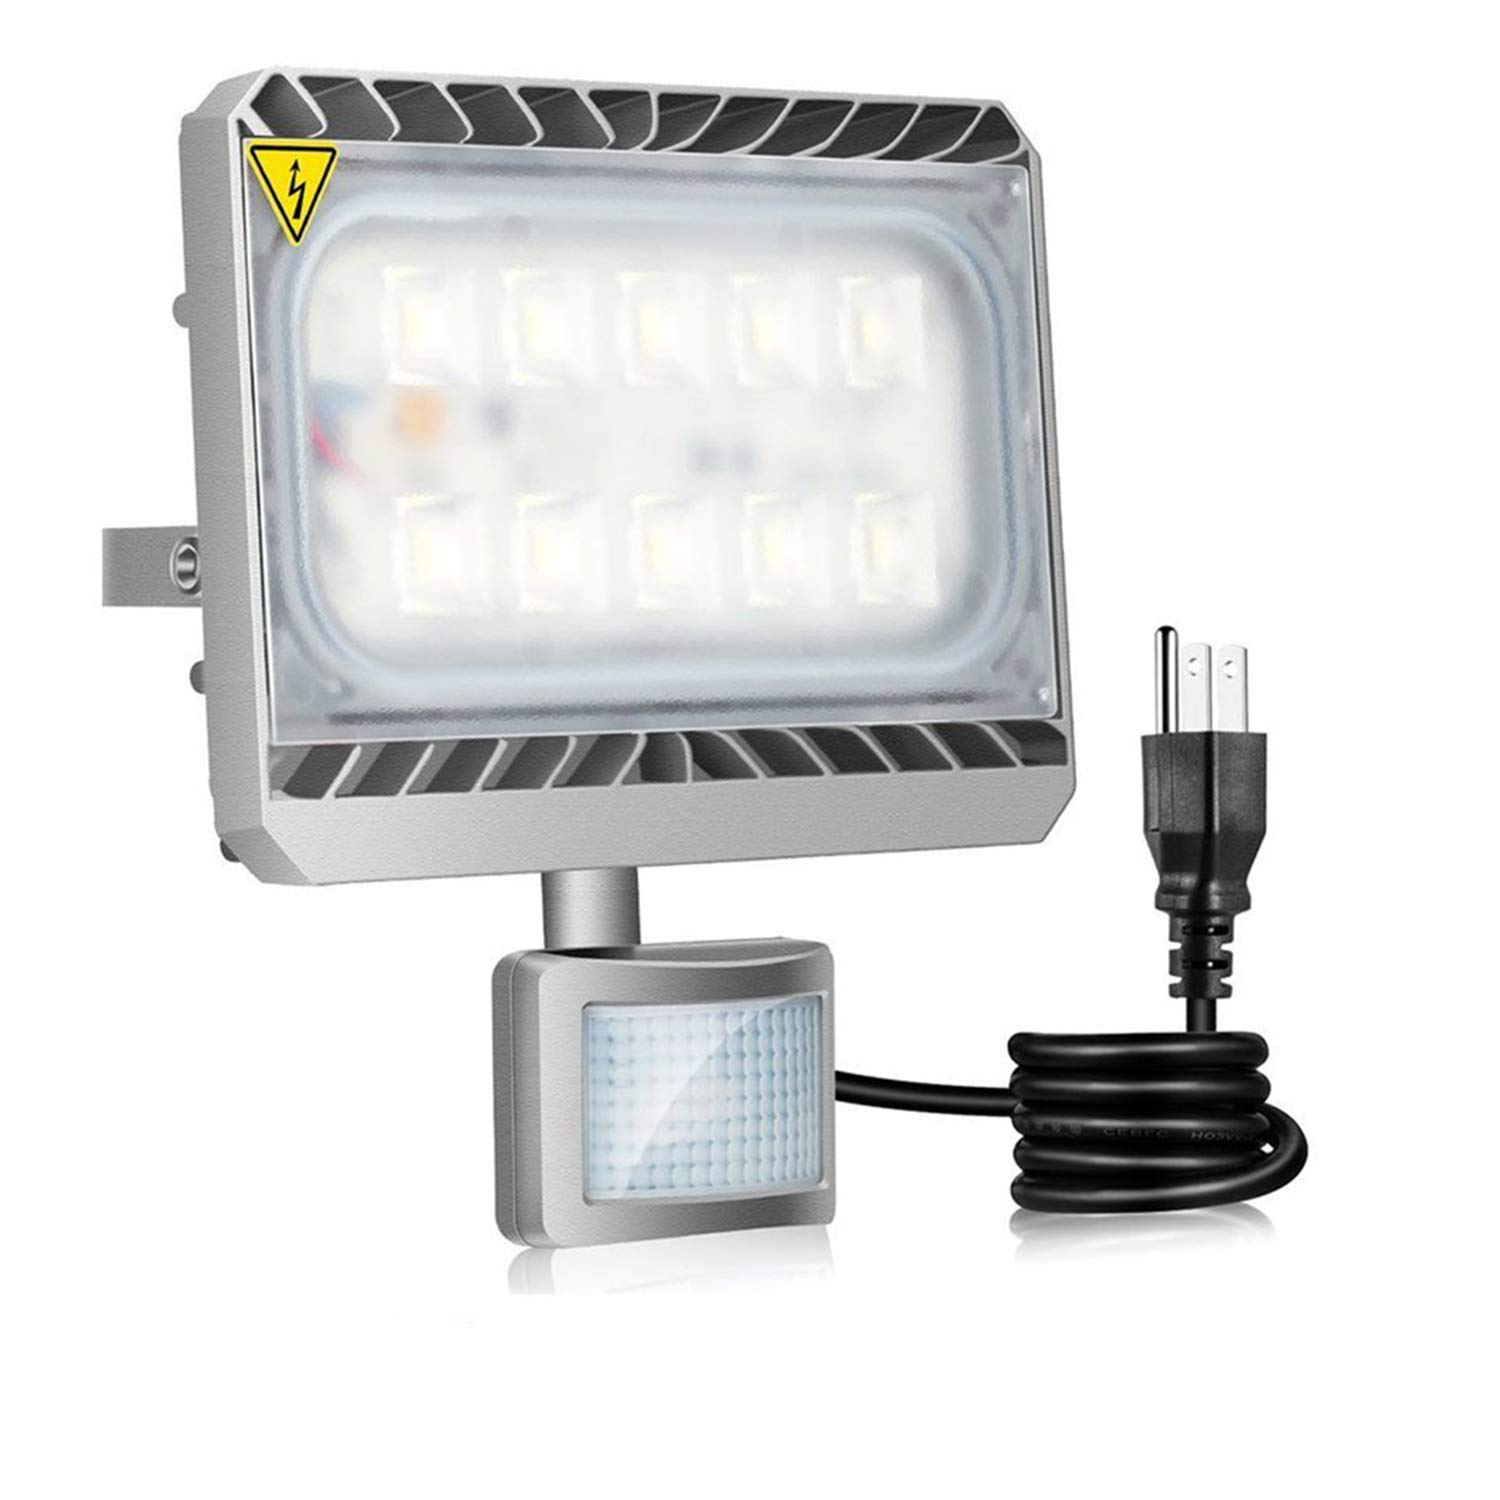 Motion Sensor Security Light, STASUN 50W 4500lm LED Flood Light Outdoor, 6000K Daylight, Built with Cree LED Chips, Waterproof, Great for Entryways, Yard and Garage